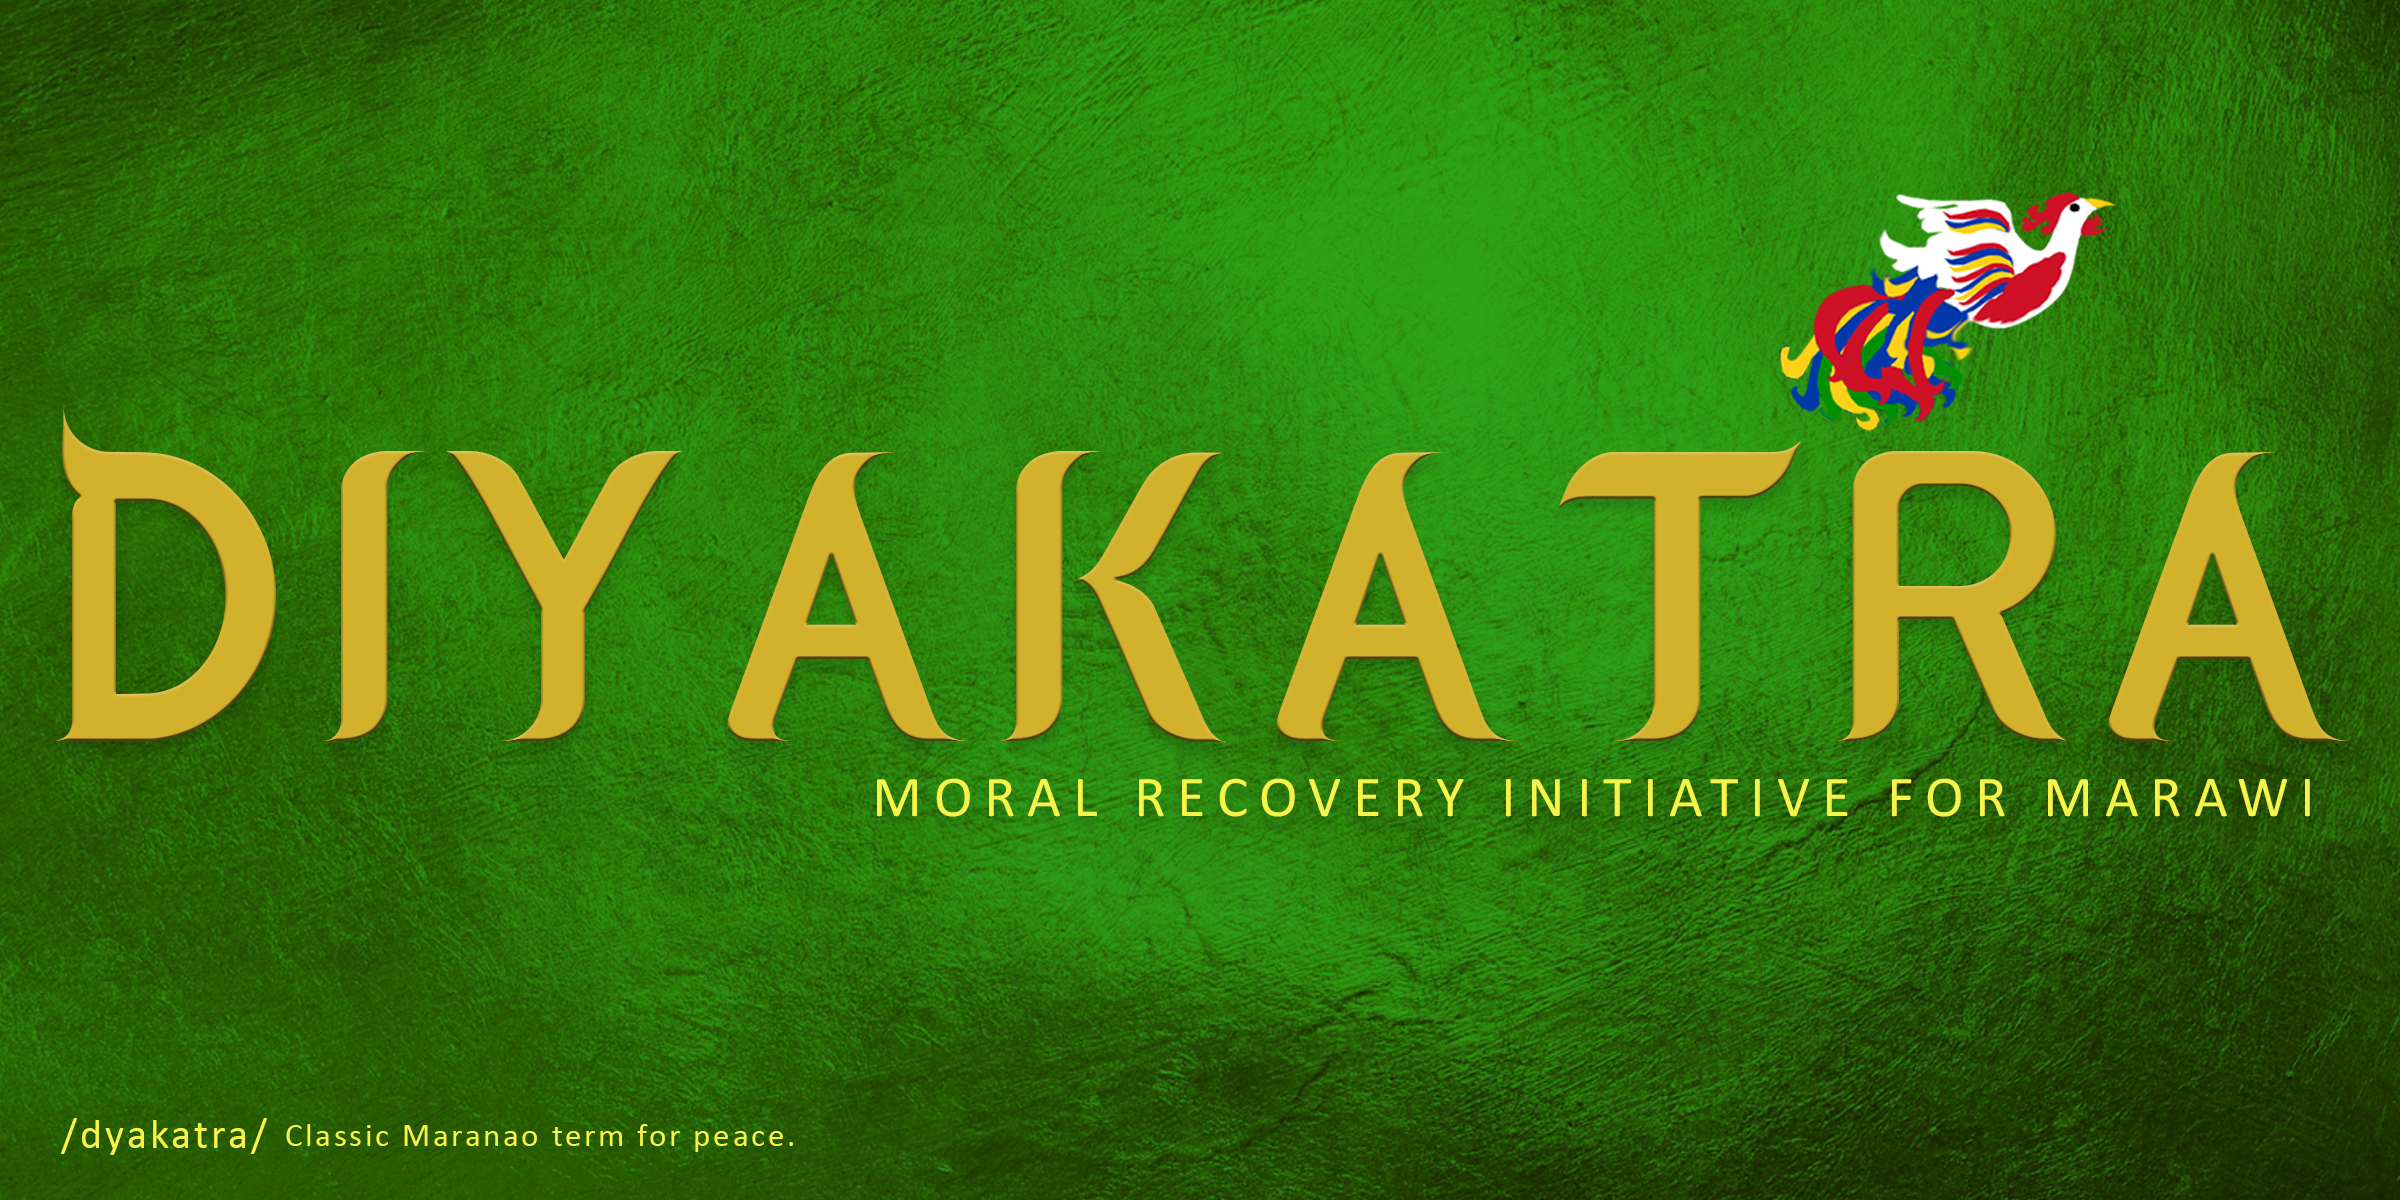 Diyakatra: A Moral Recovery Initiative For Marawi